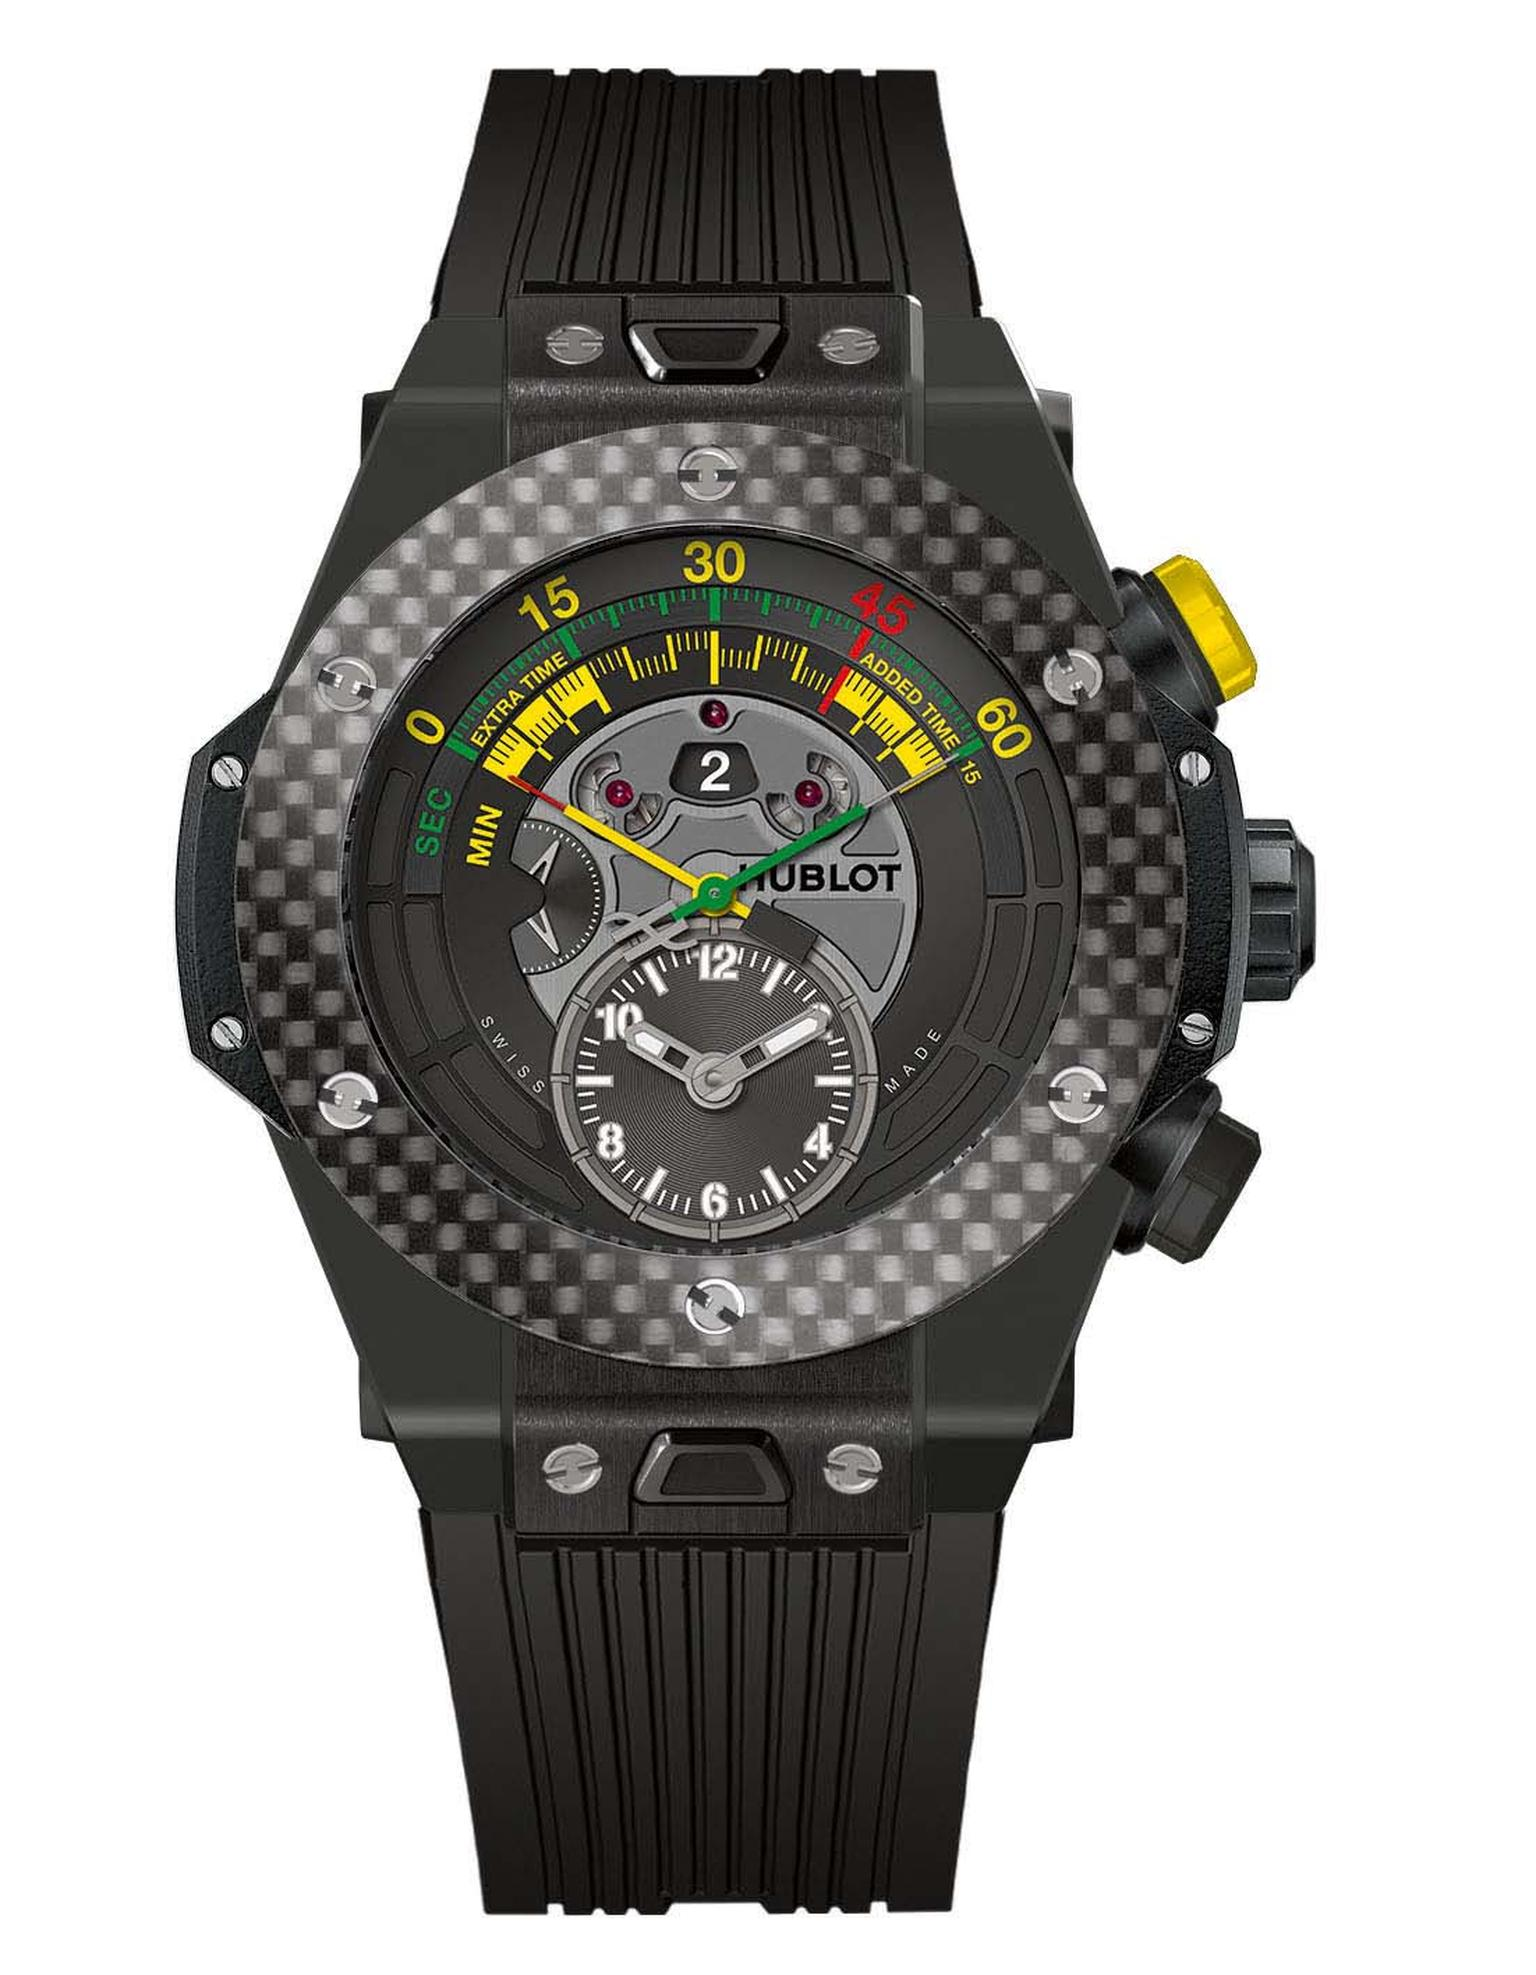 The black ceramic model of Hublot's Big Bang Unico Bi-Retrograde Chrono, the official watch of the 2014 Fifa World Cup in Brazil, with a carbon-fibre bezel, limited to 200 pieces.